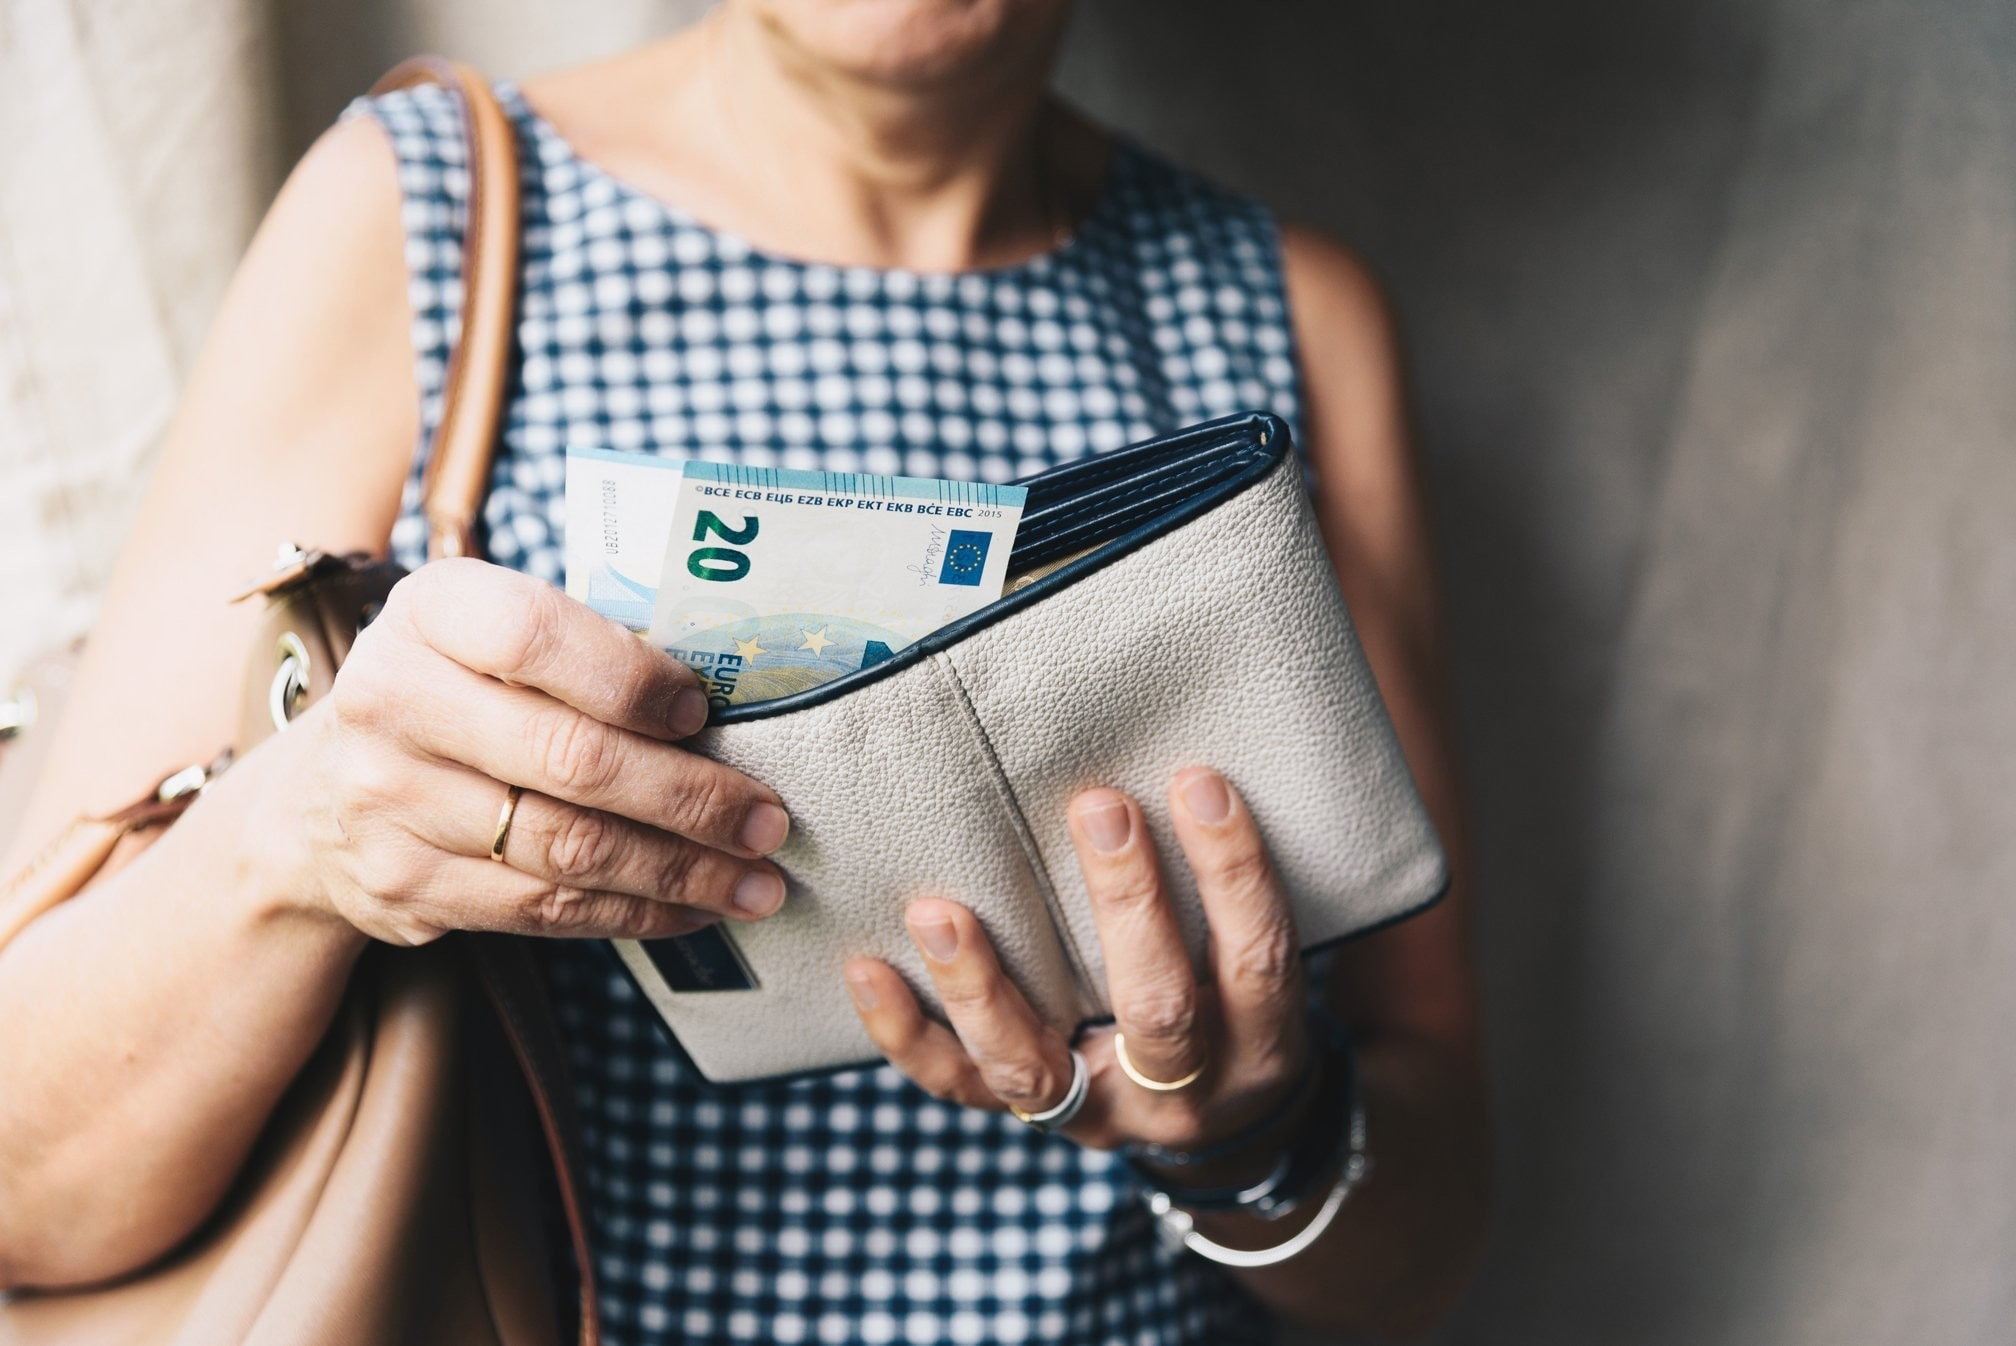 buying techniques: close up of a woman holding an open purse, showing the money inside.